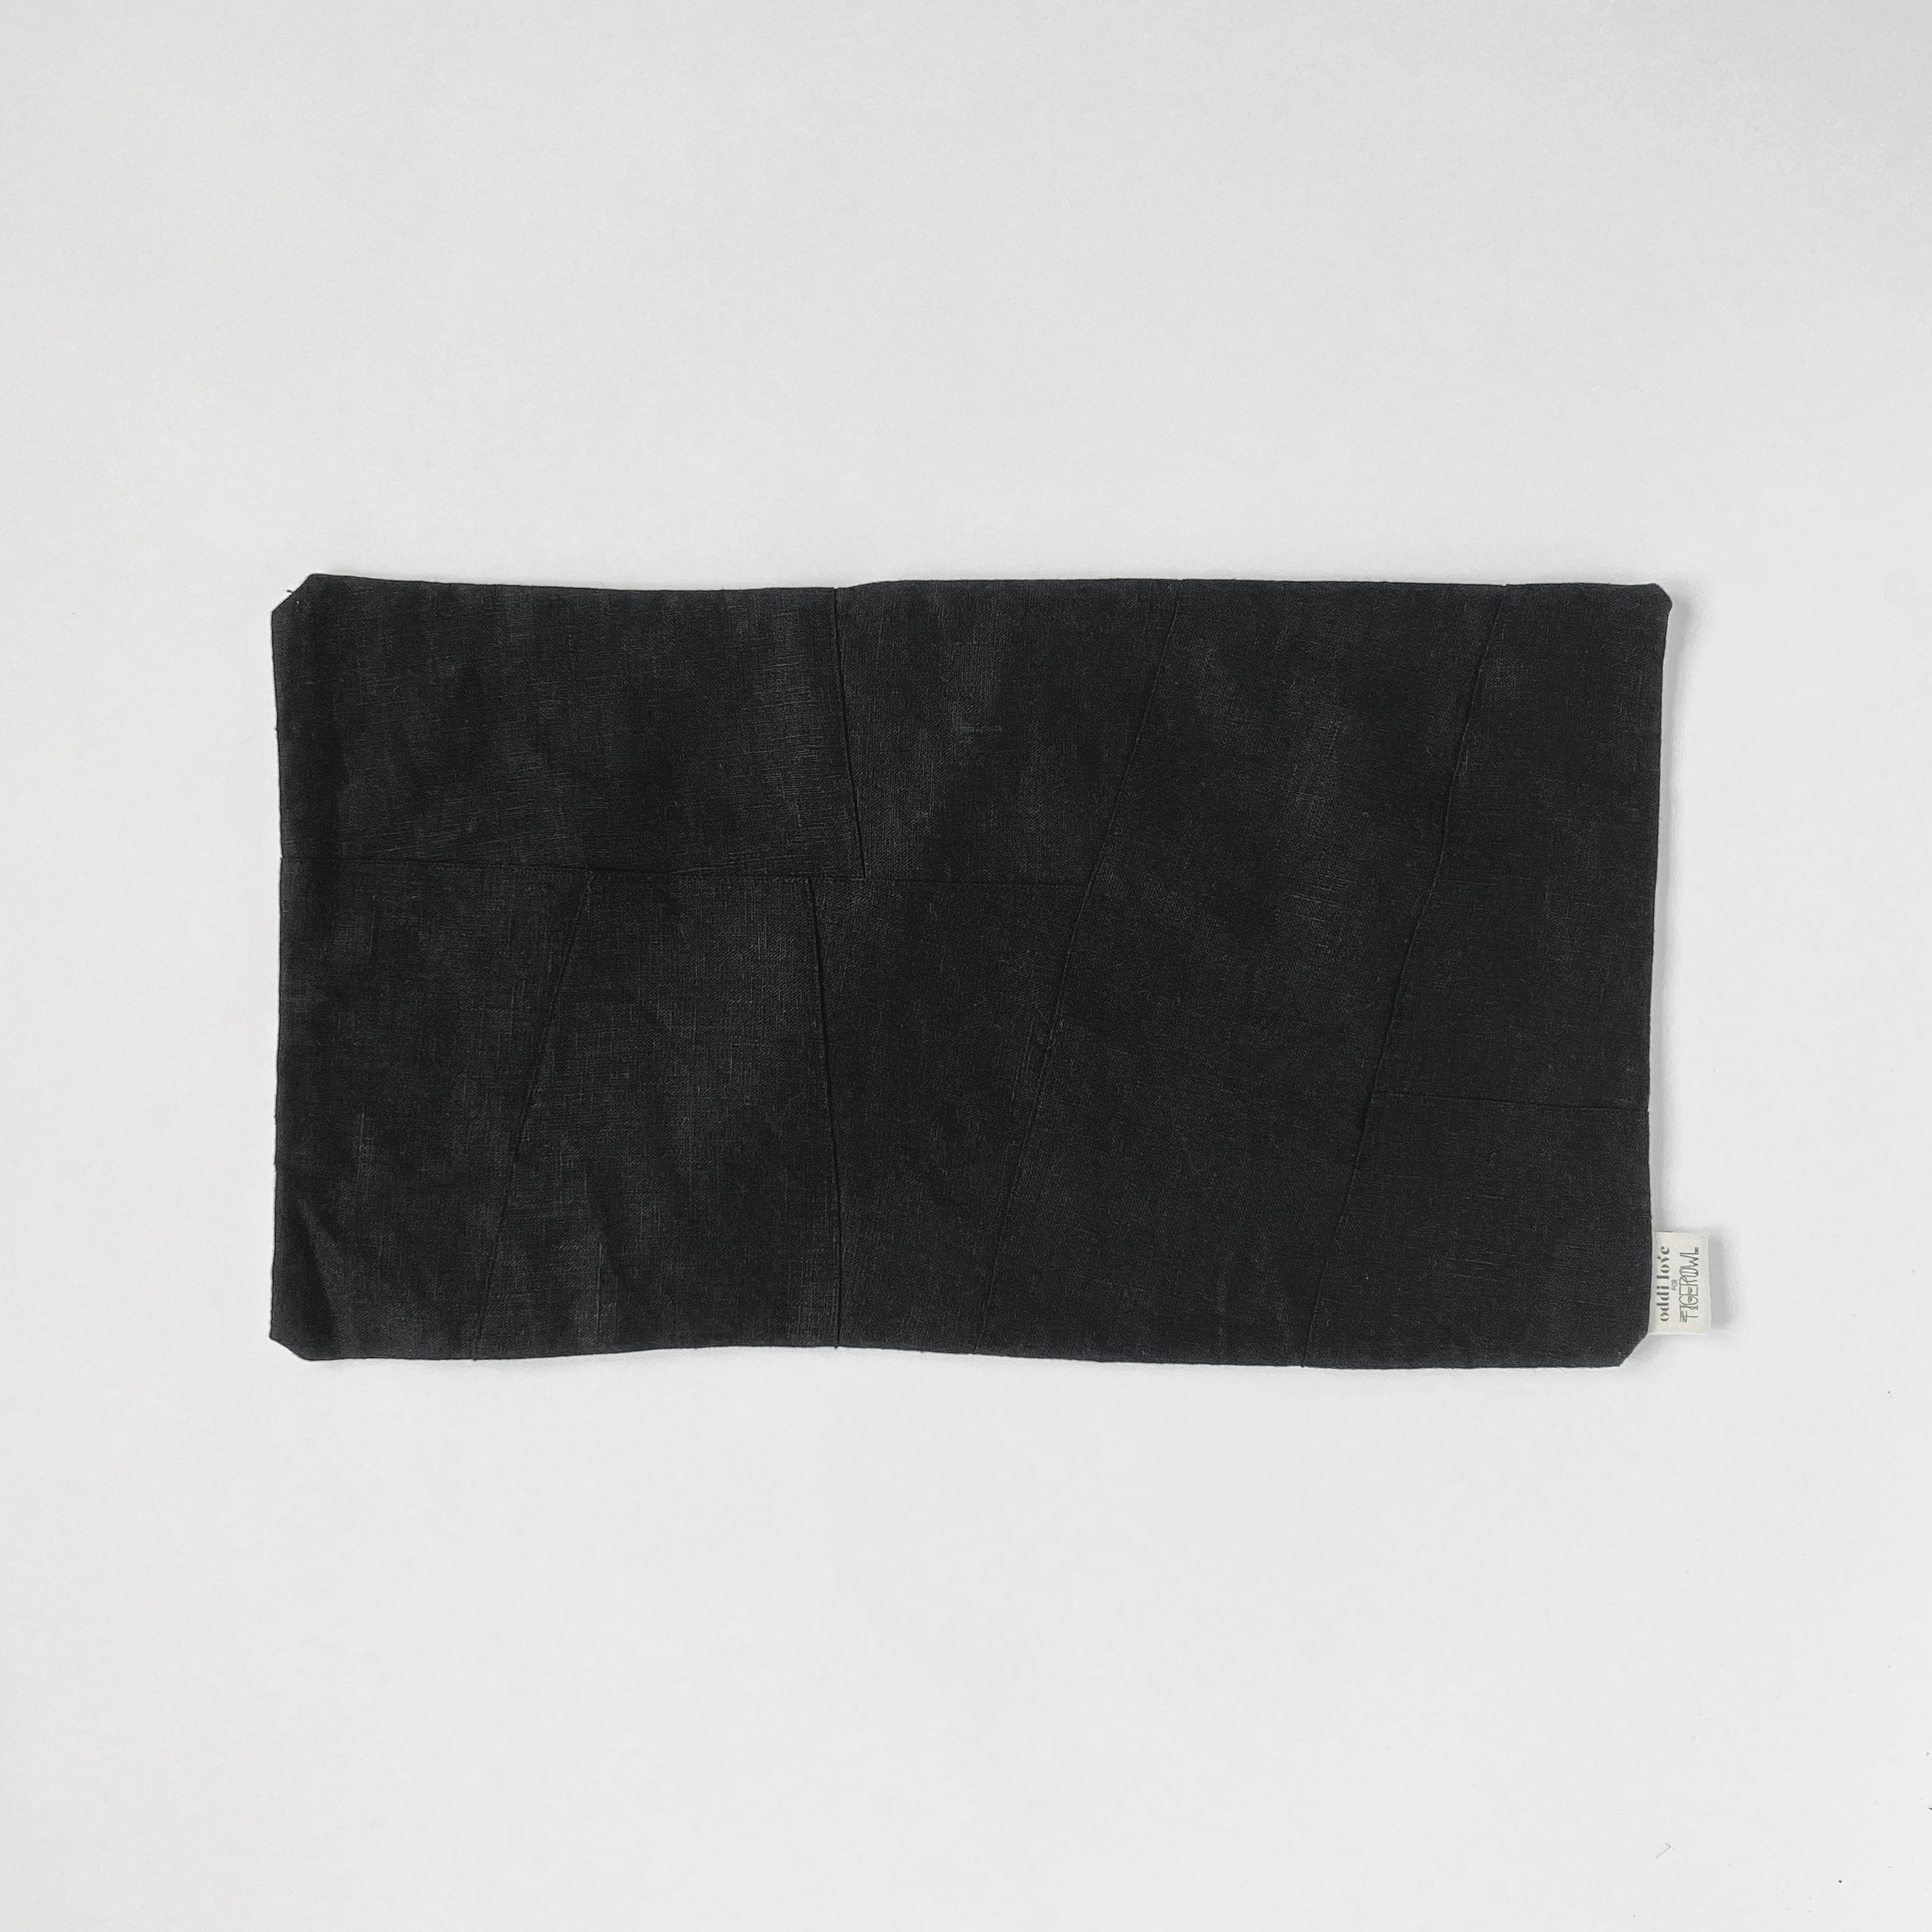 PILLOW SHAM / BLACK LUMBAR